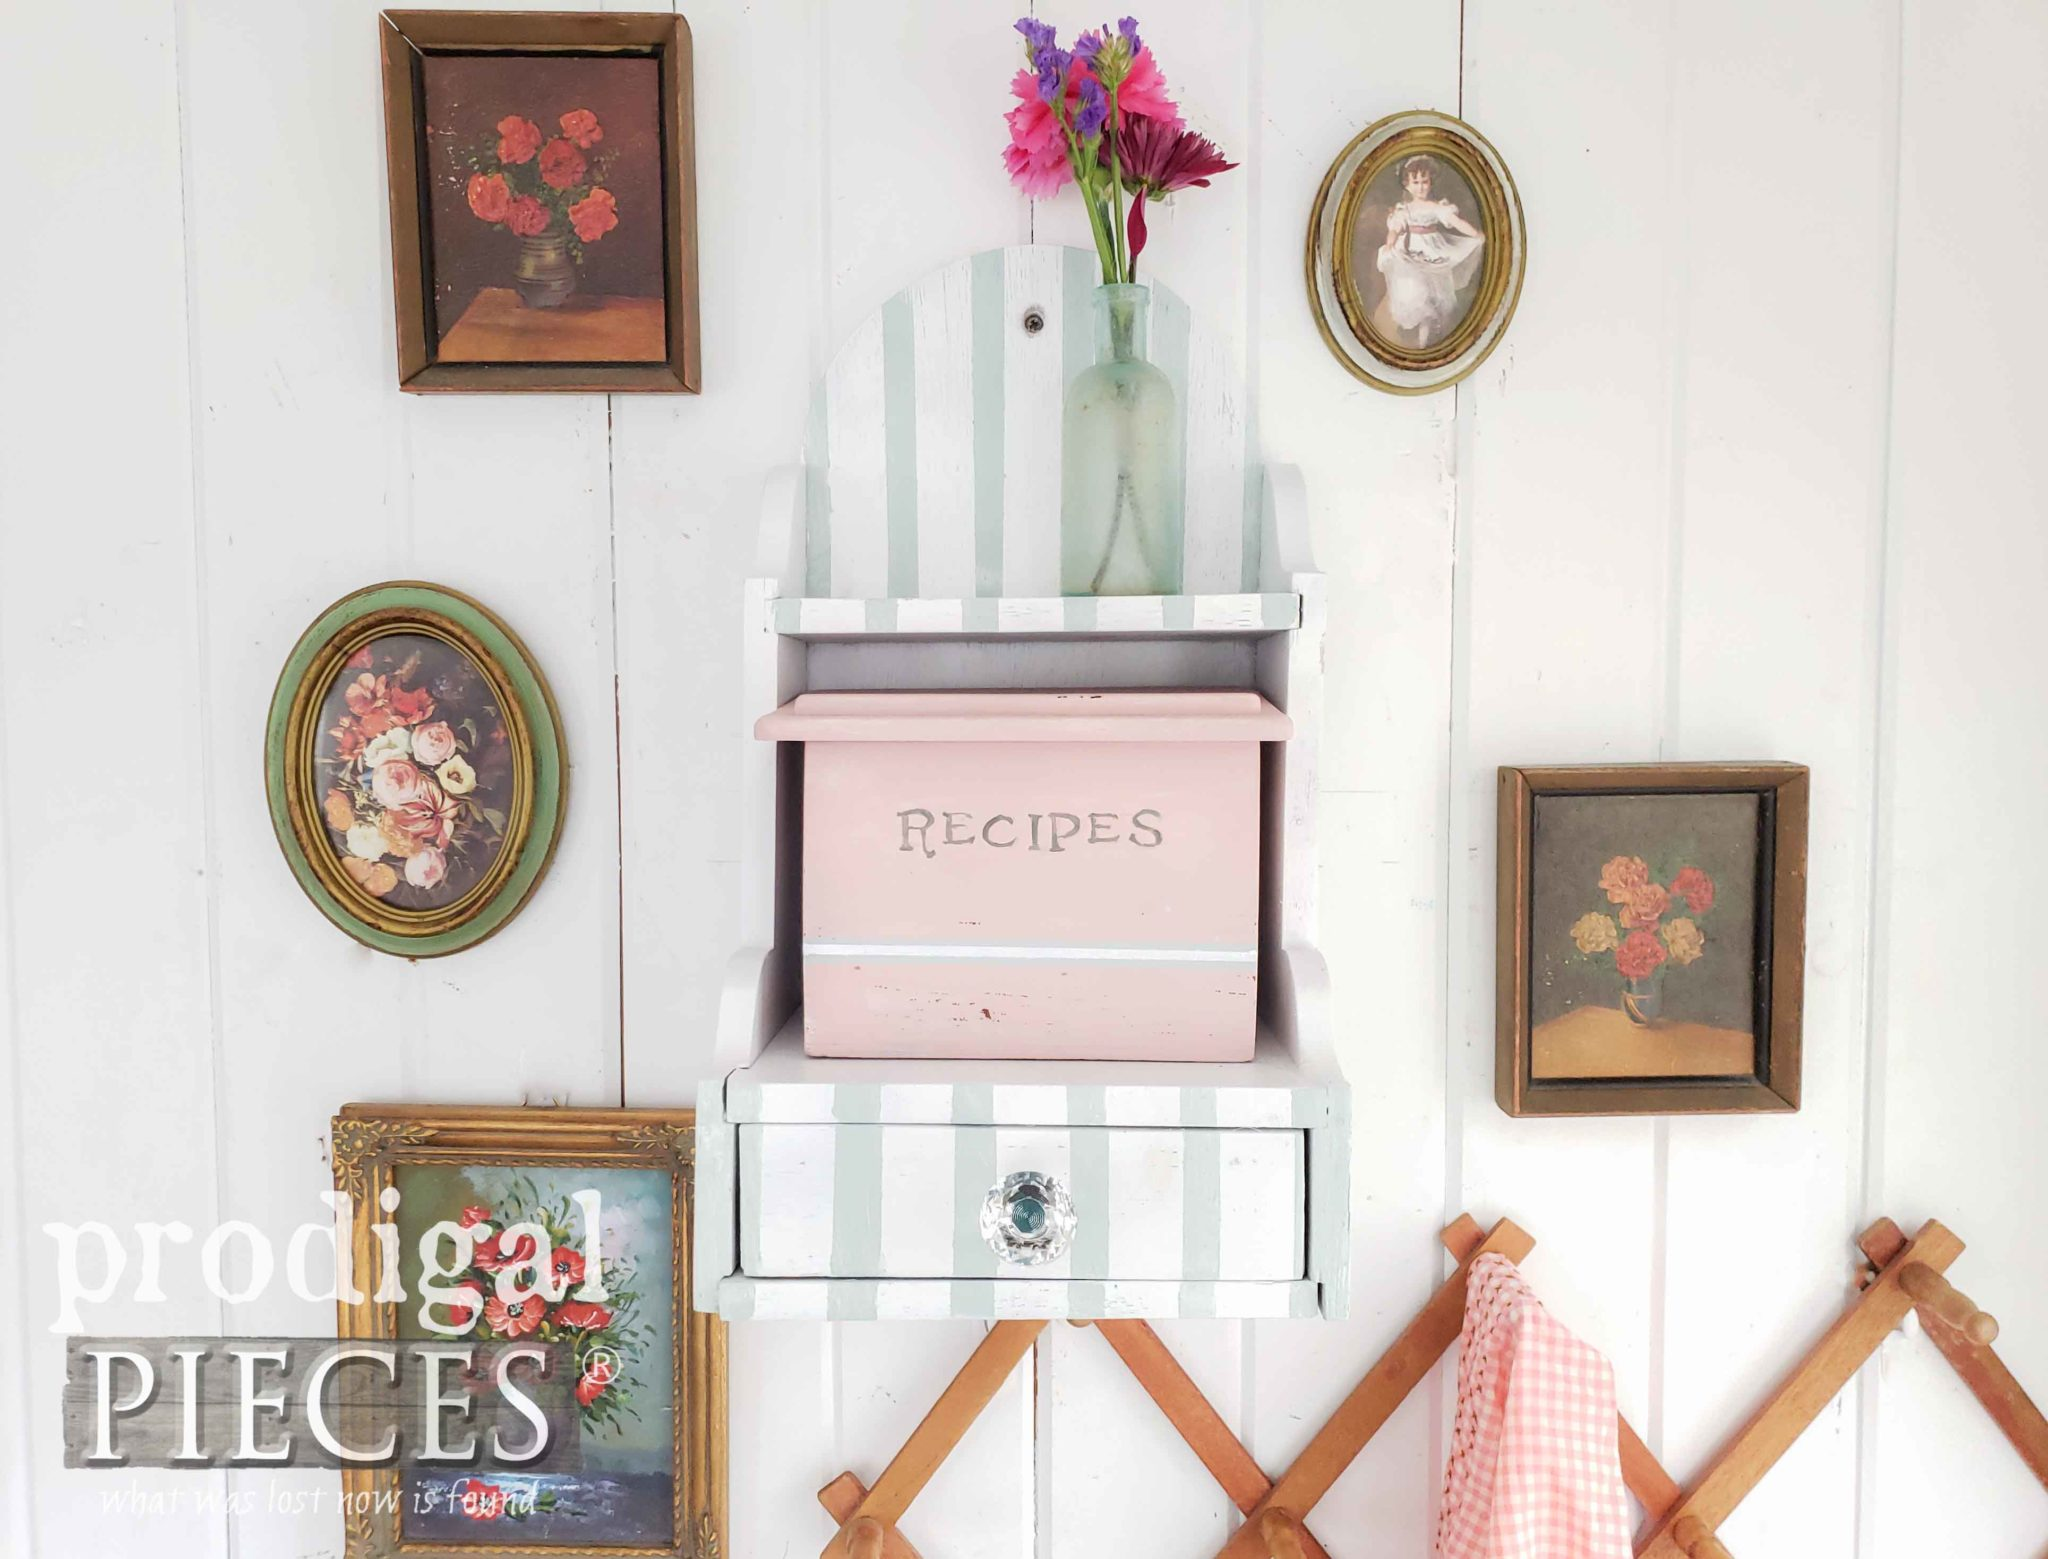 Vintage Recipe Box Makeover with Cottage Style | Video Tutorial can be seen at Prodigal Pieces | prodigalpieces.com #prodigalpieces #handmade #home #vintage #homedecor